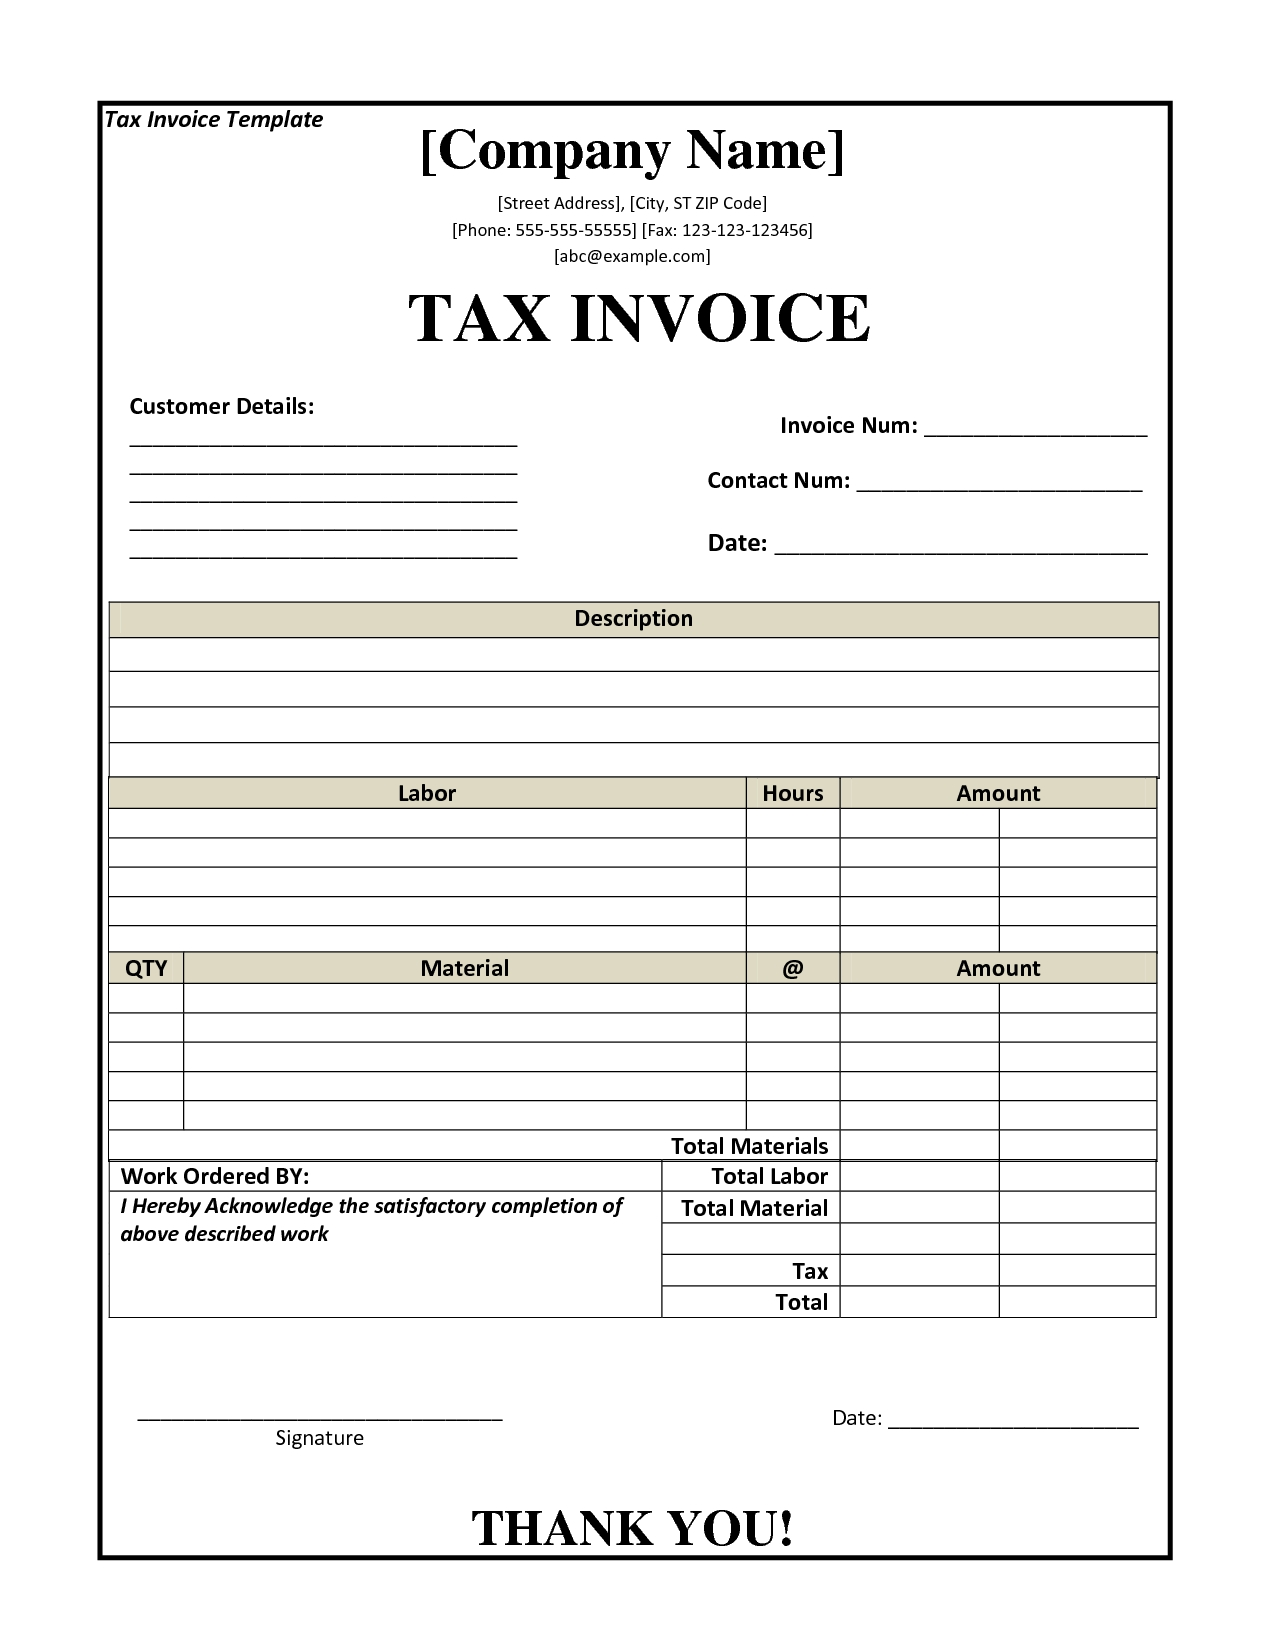 Basic tax invoice template invoice template ideas simple invoice sample free simple invoice template excel design basic tax invoice template alramifo Choice Image